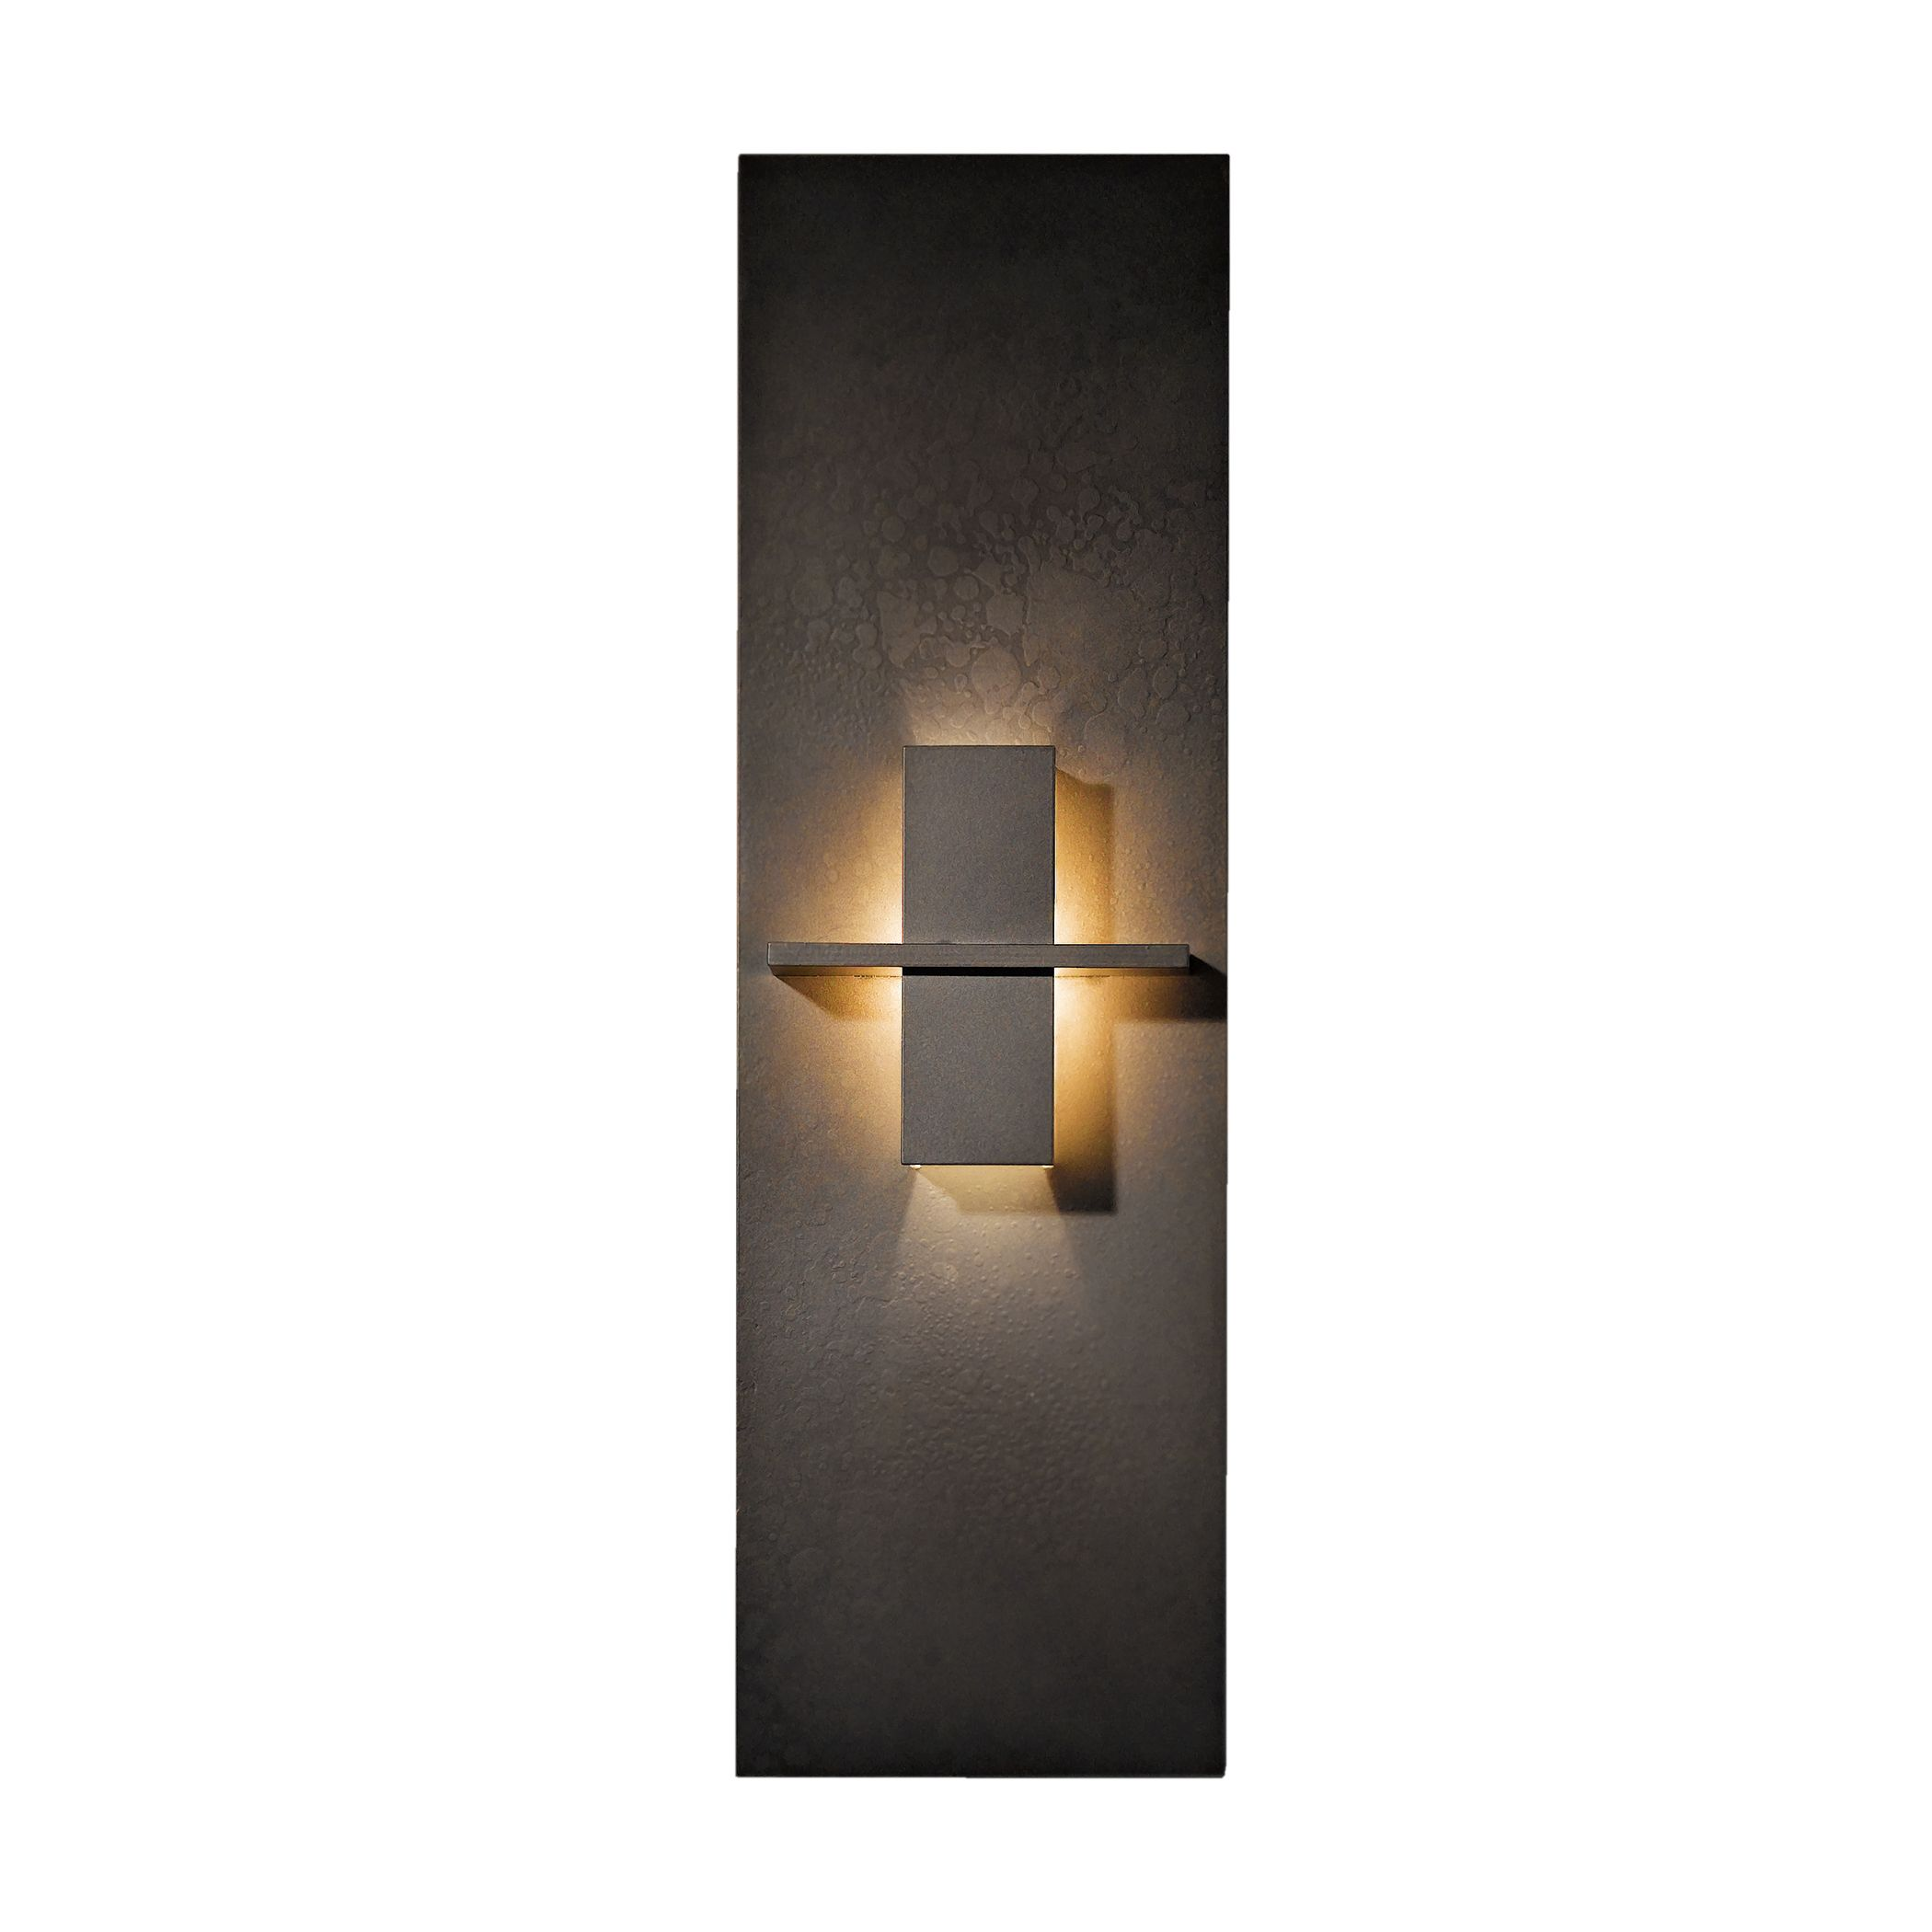 Thumbnail for Aperture Vertical Sconce